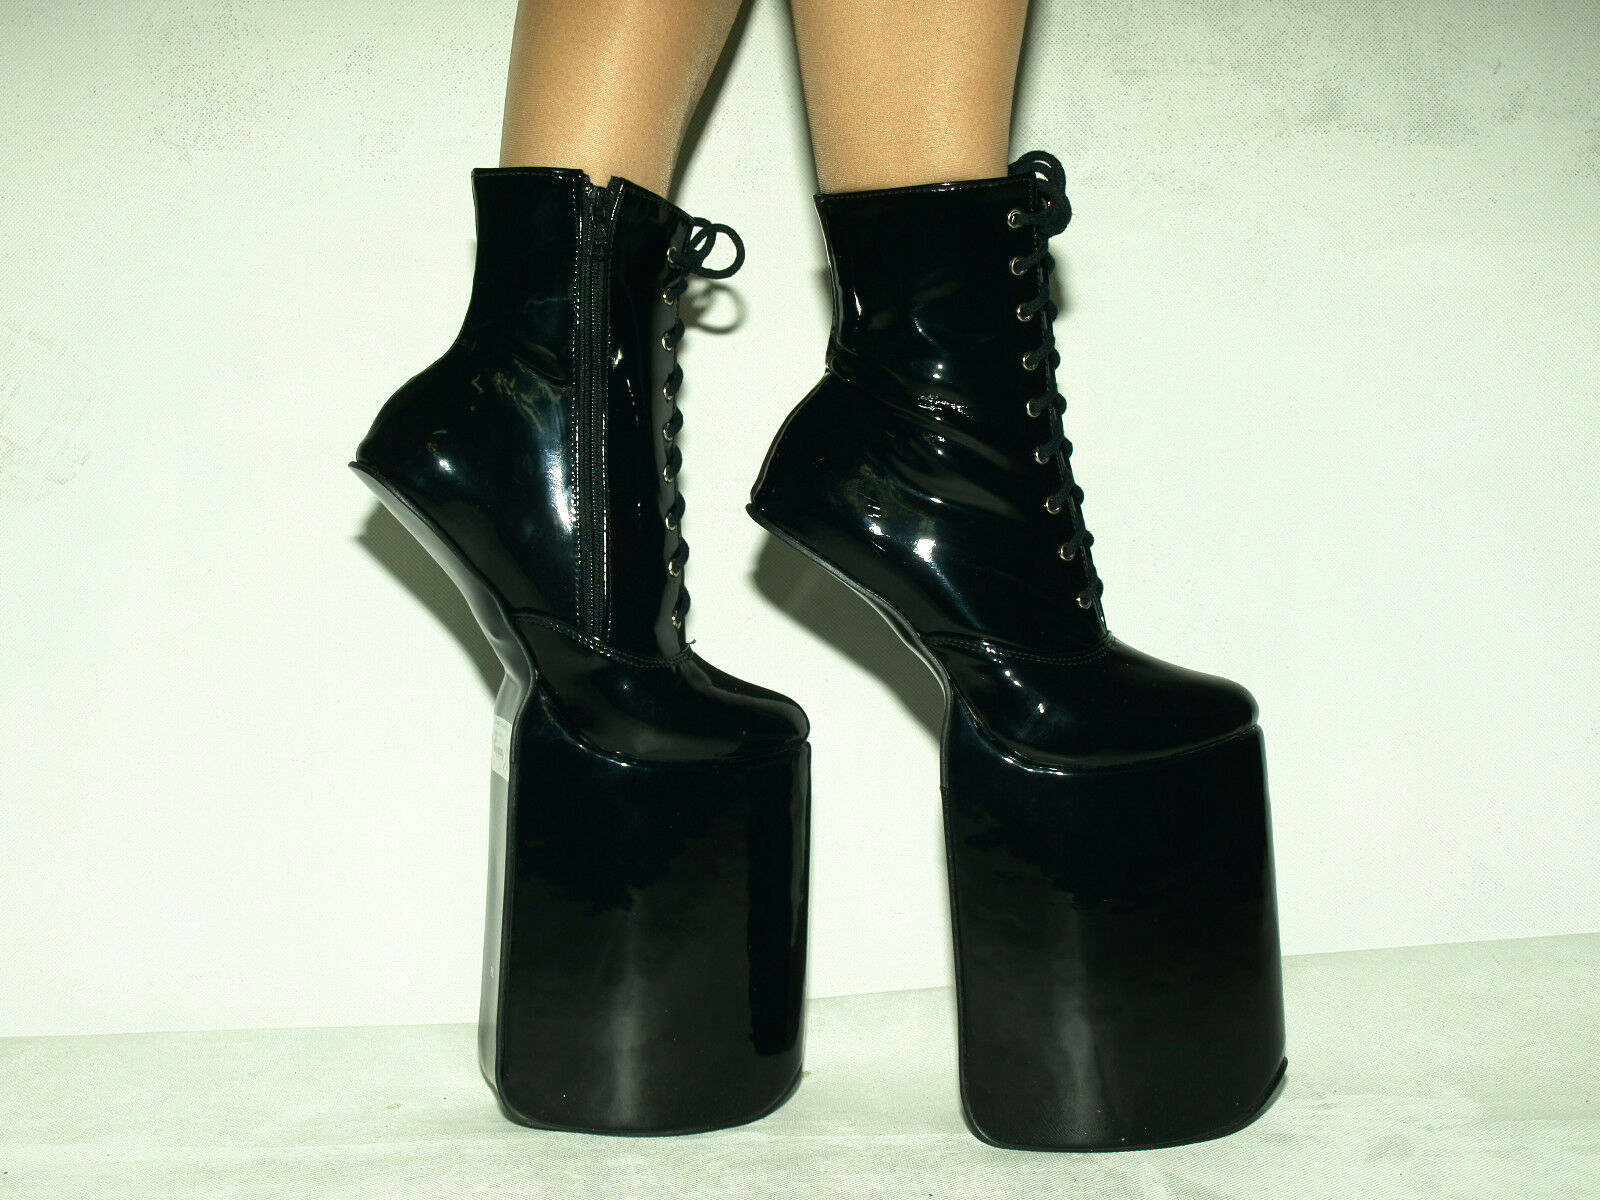 PONY BOOTS NEW PLATFORM 20CM-8CA LACK STRONG SIZE 6-16 BOLINGIER POLAND 1463